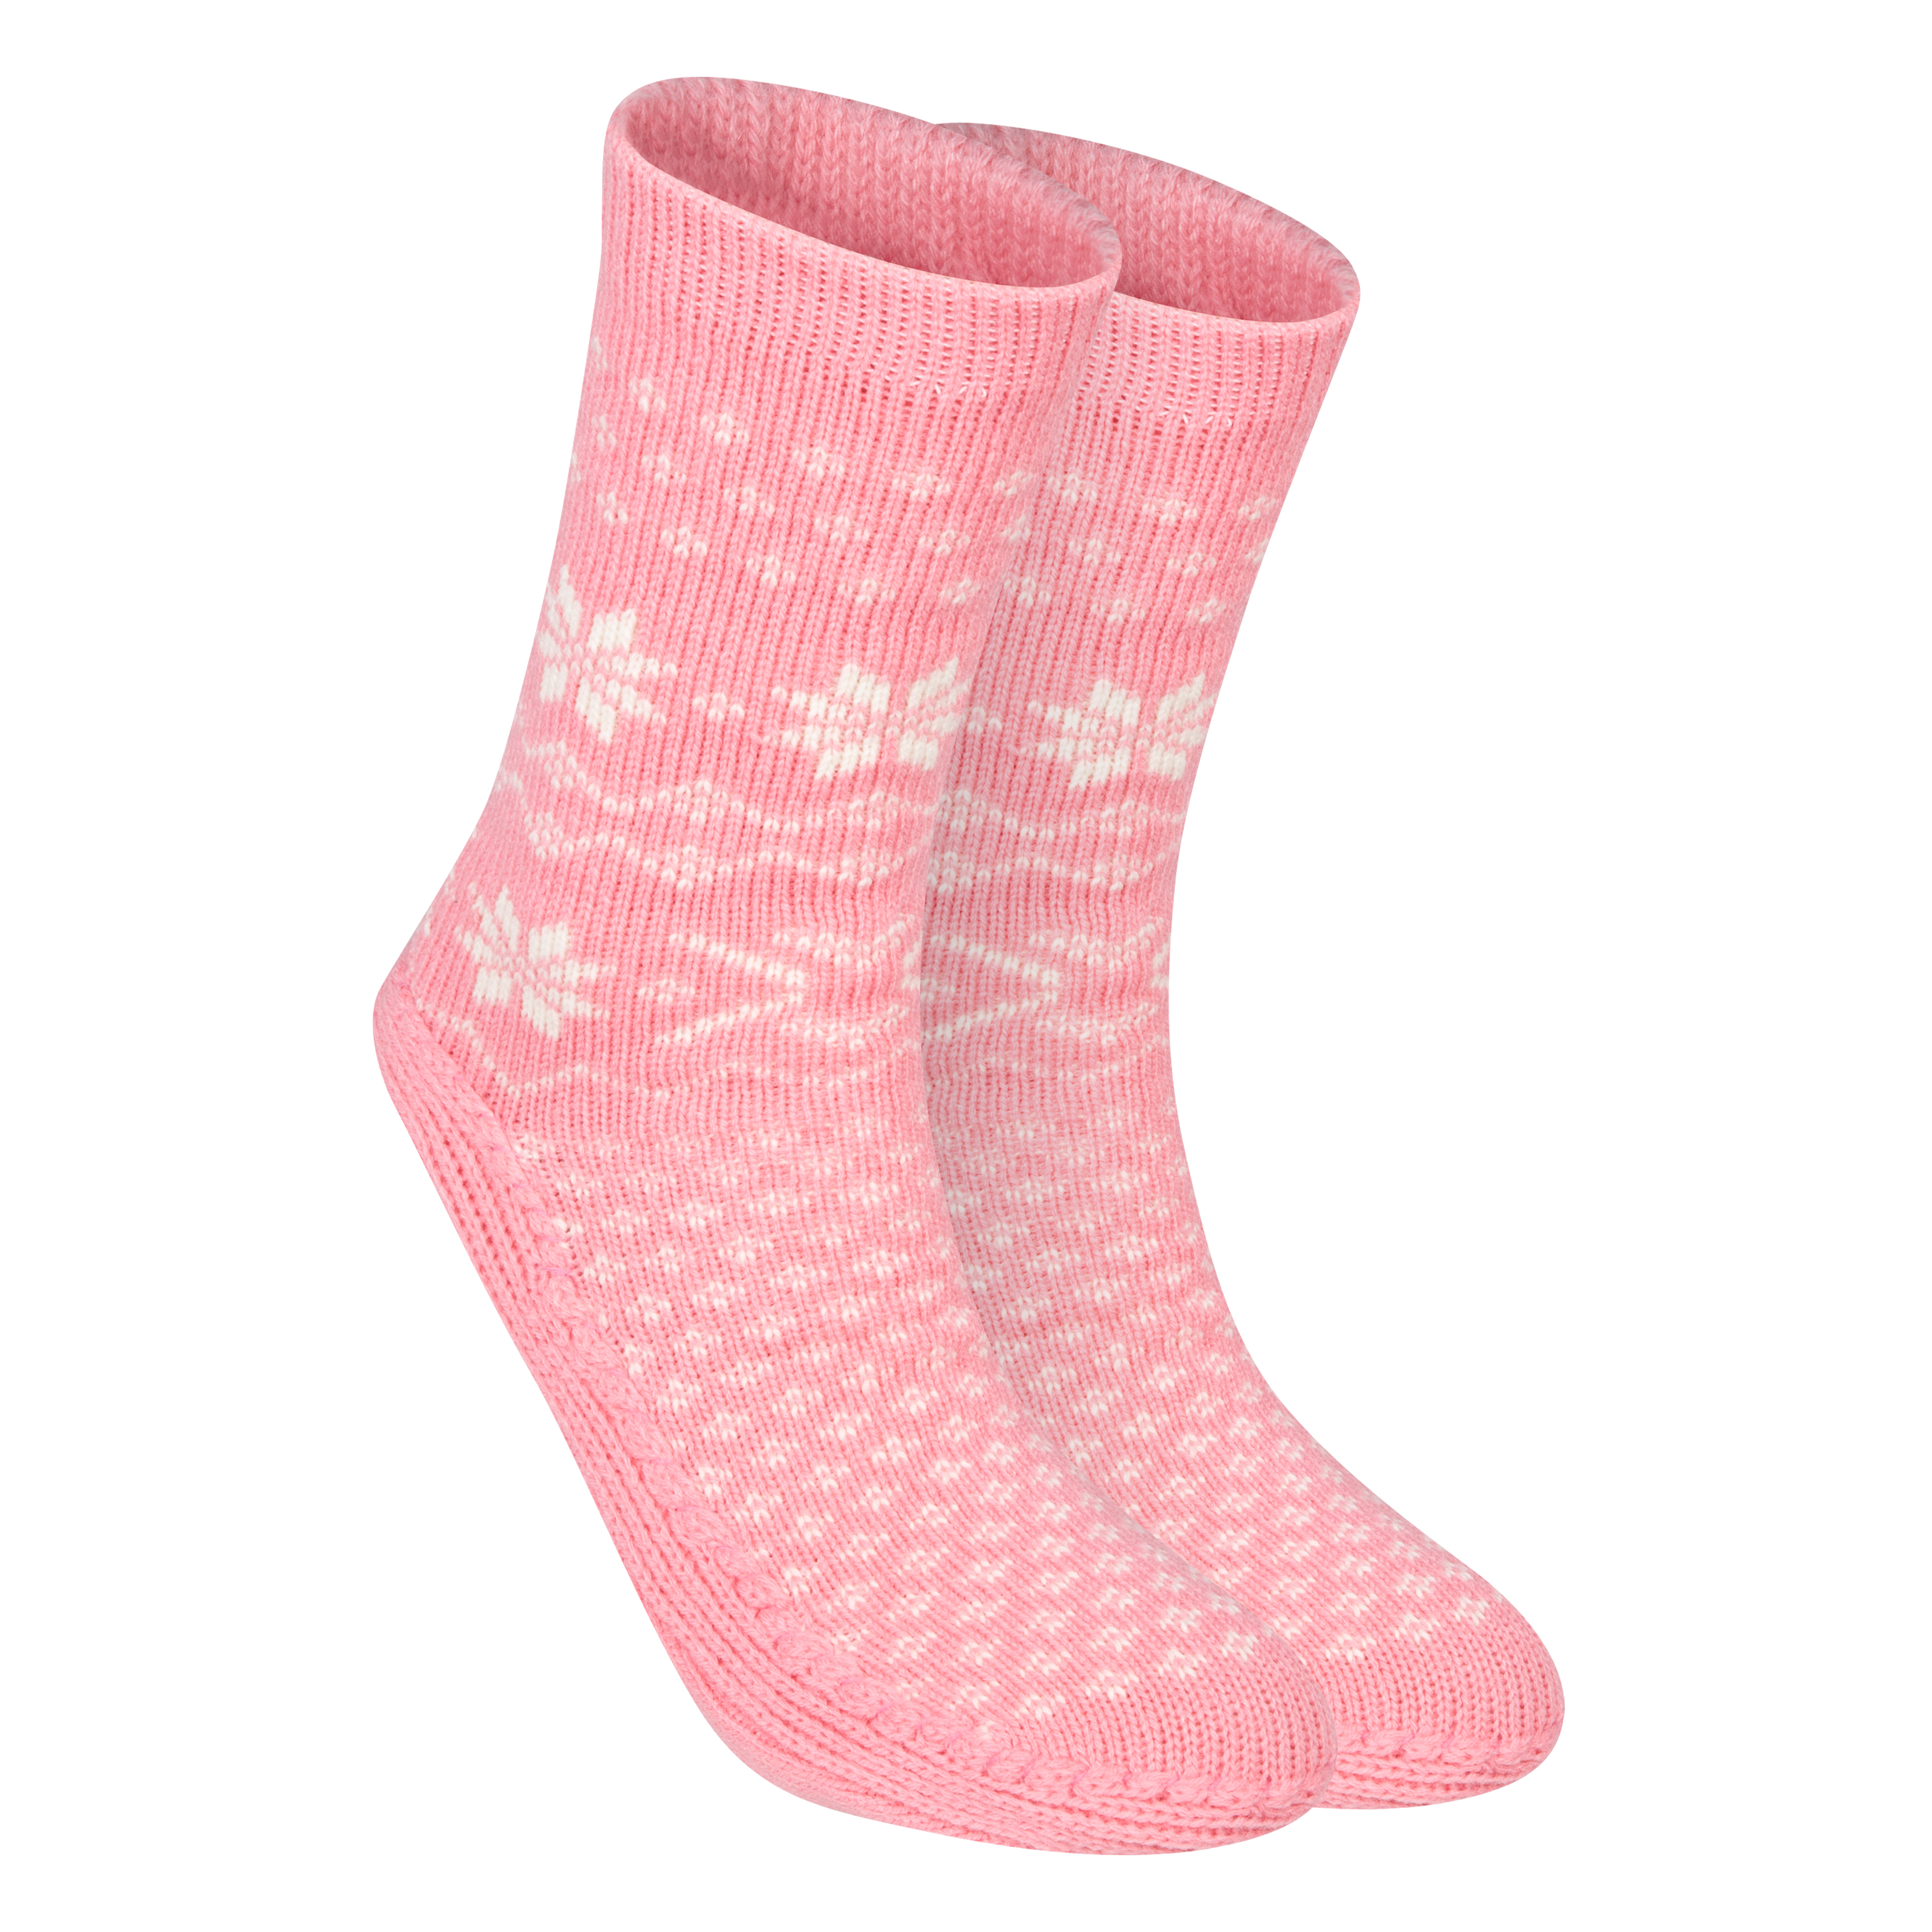 Manchester City Slipper Socks - Womens Pink